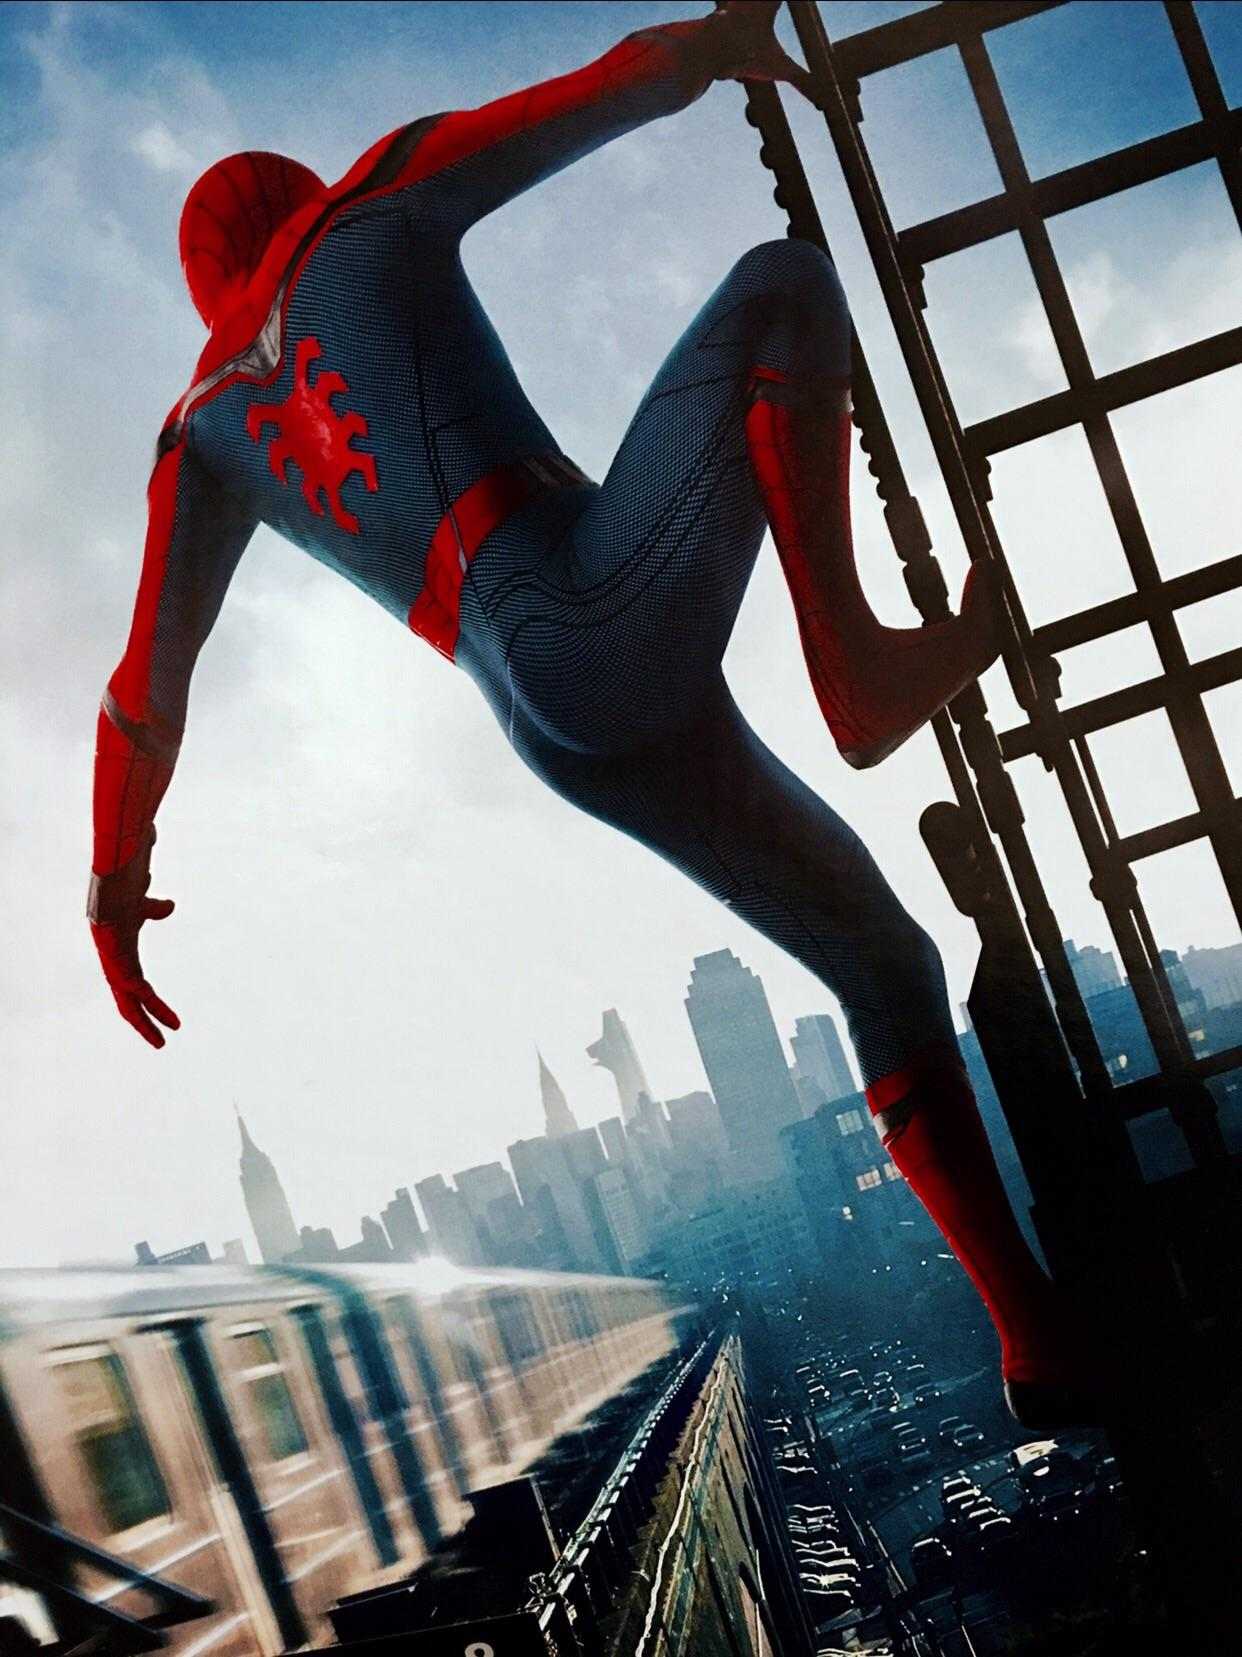 Spider-Man Phone Wallpapers - Top Free Spider-Man Phone